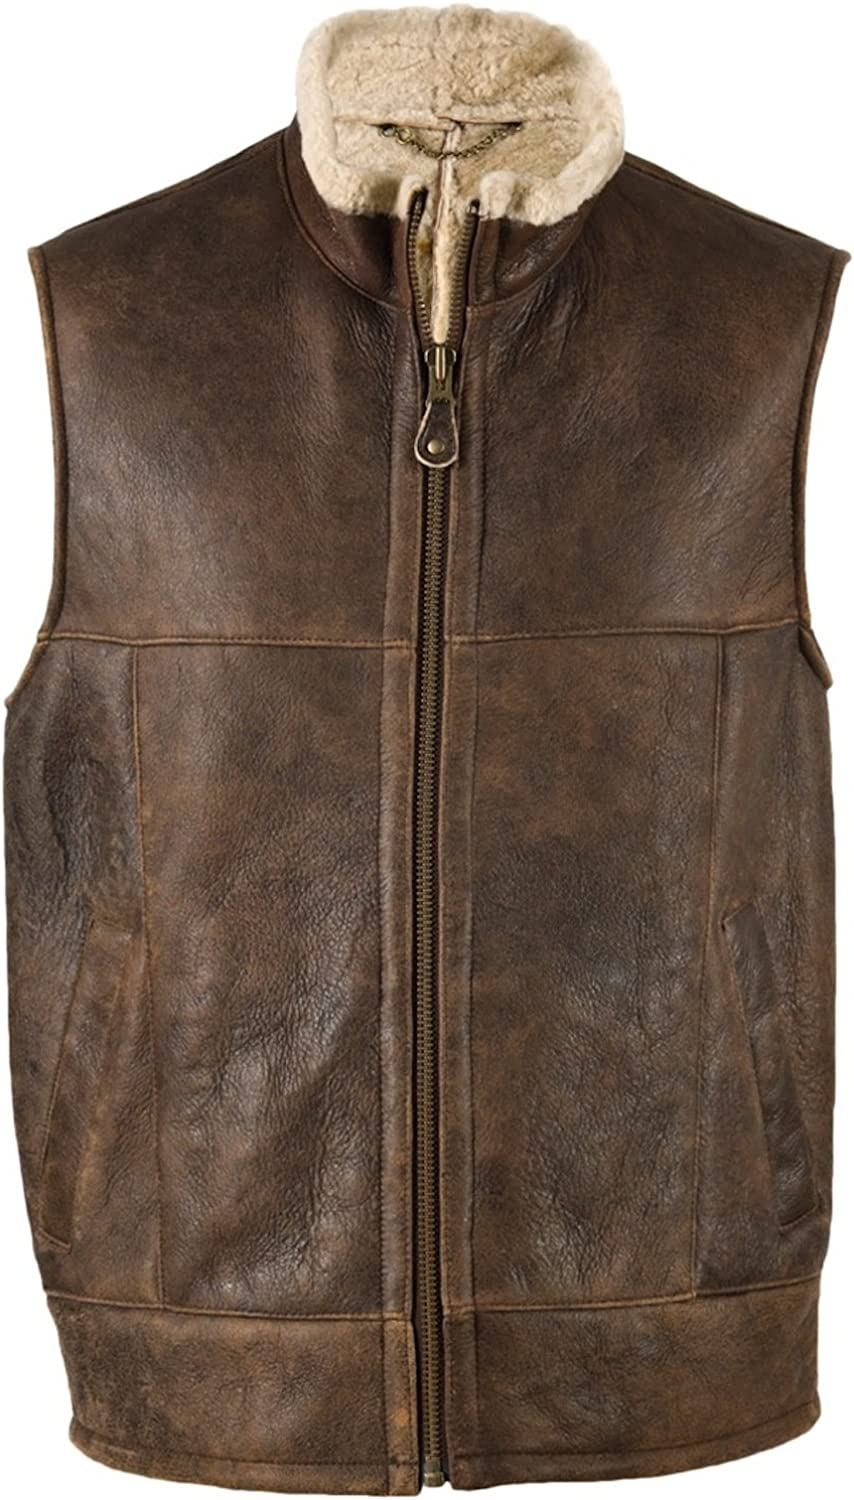 Bushga Mens Luxury Full Sheepskin Leather Gilet Body Warmer Sizes 38 48 At Amazon Men S Clothing Store